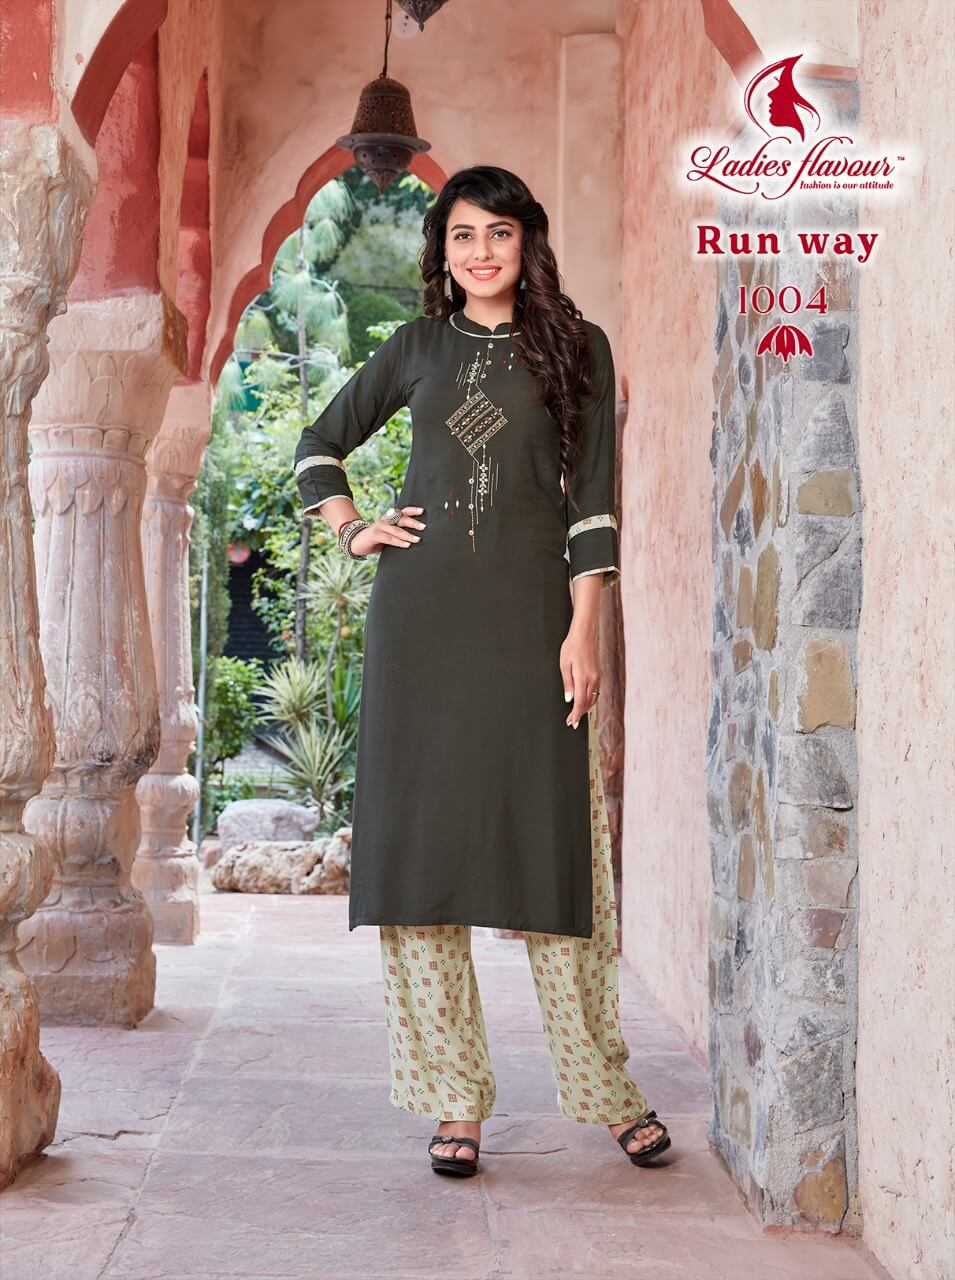 Ladies Flavour Runwey collection 6